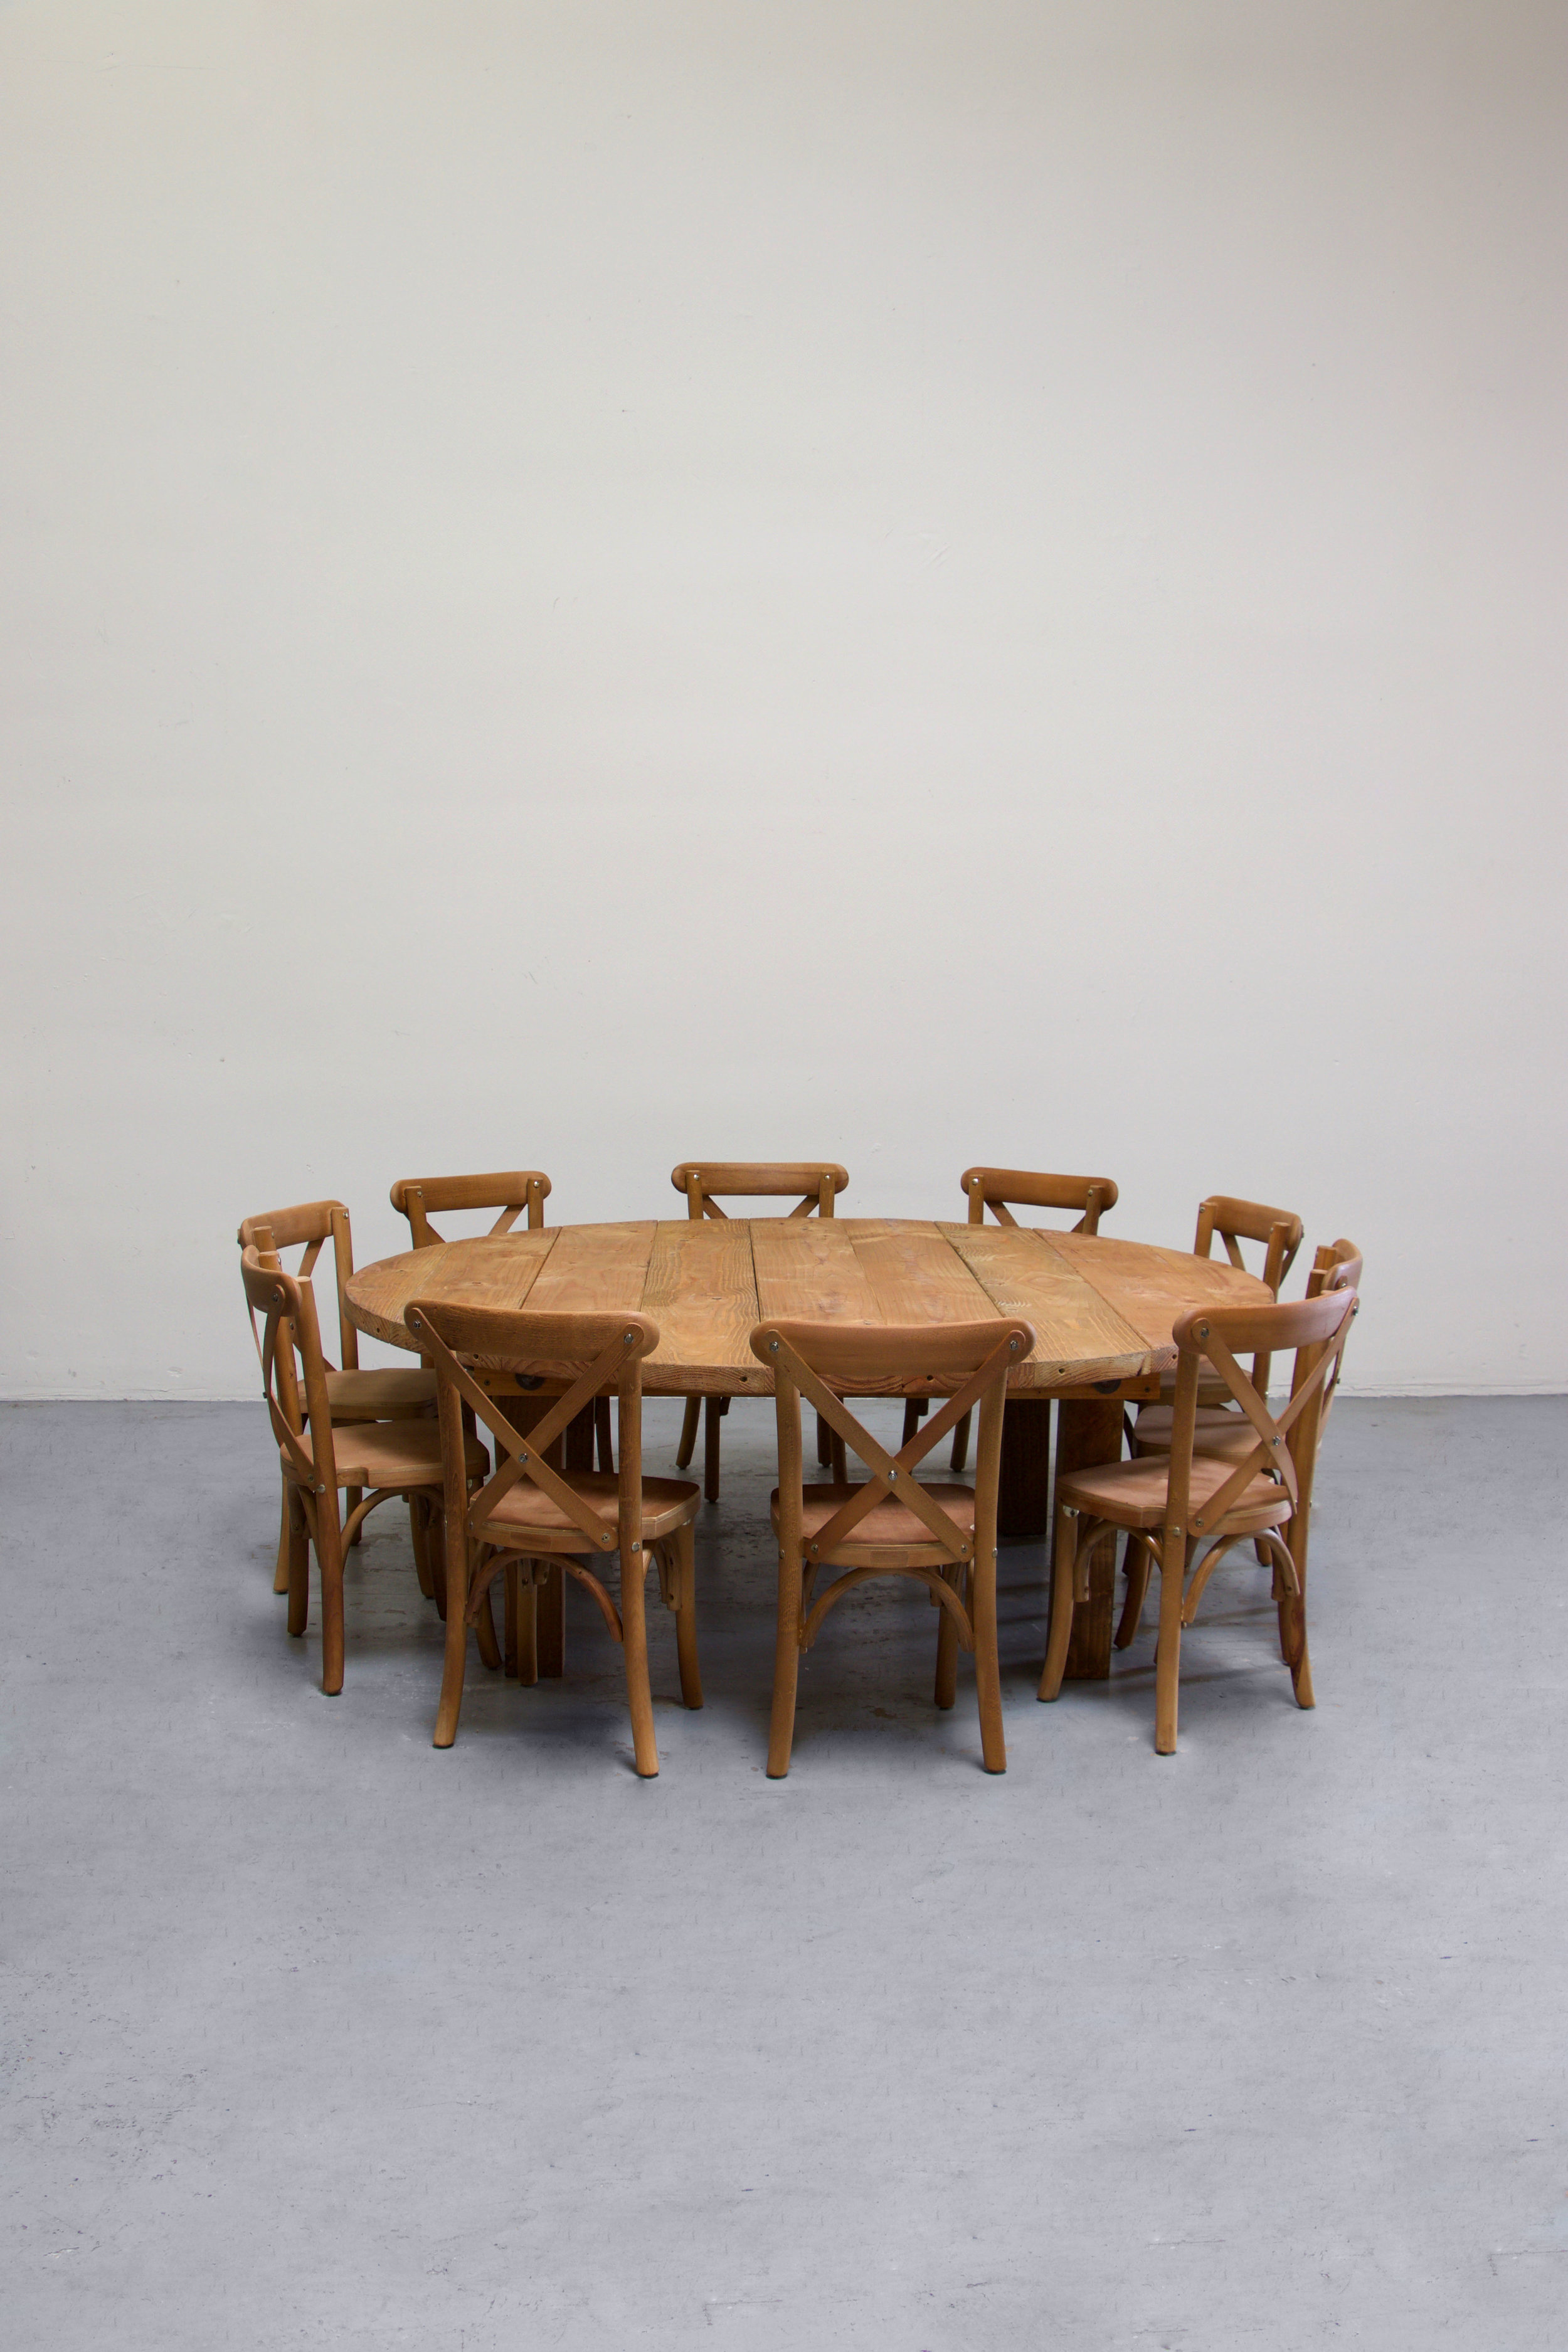 $135 1 Kids Honey Brown Round Farm Table w/ 10 Cross-Back Chairs